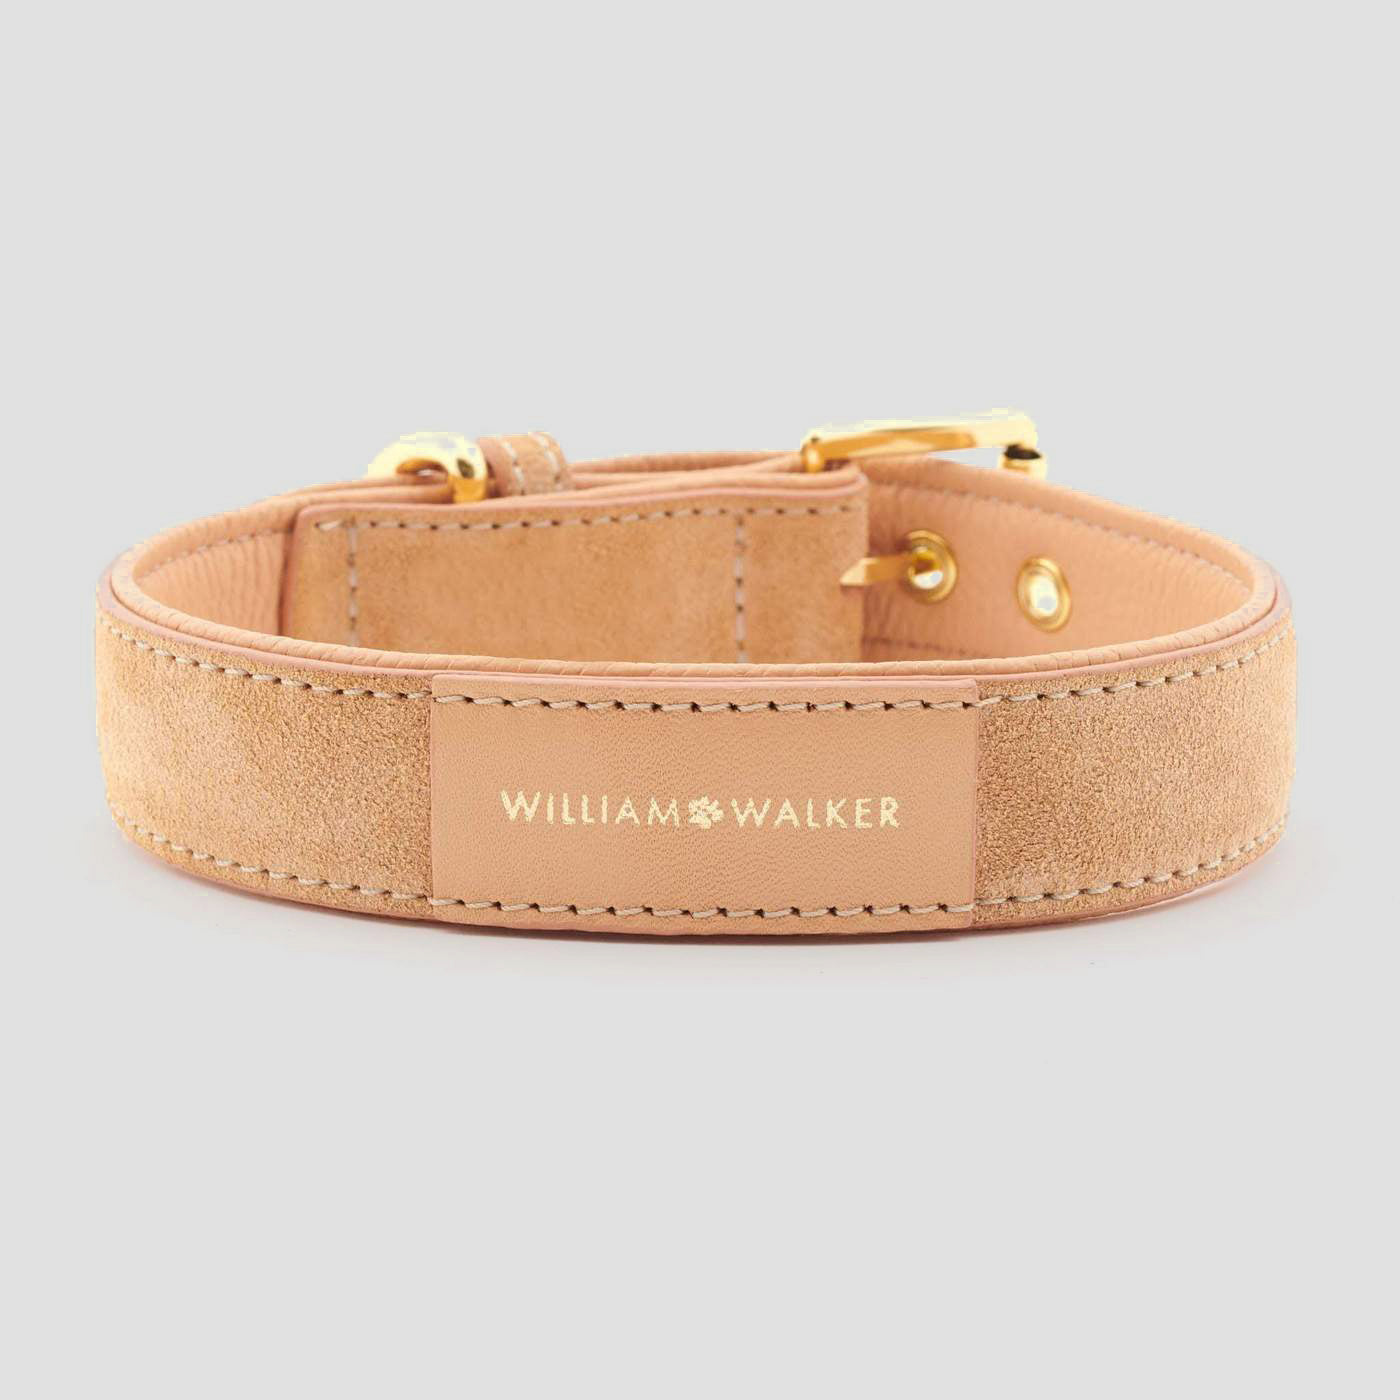 William Walker Leather Dog Collar - Coral